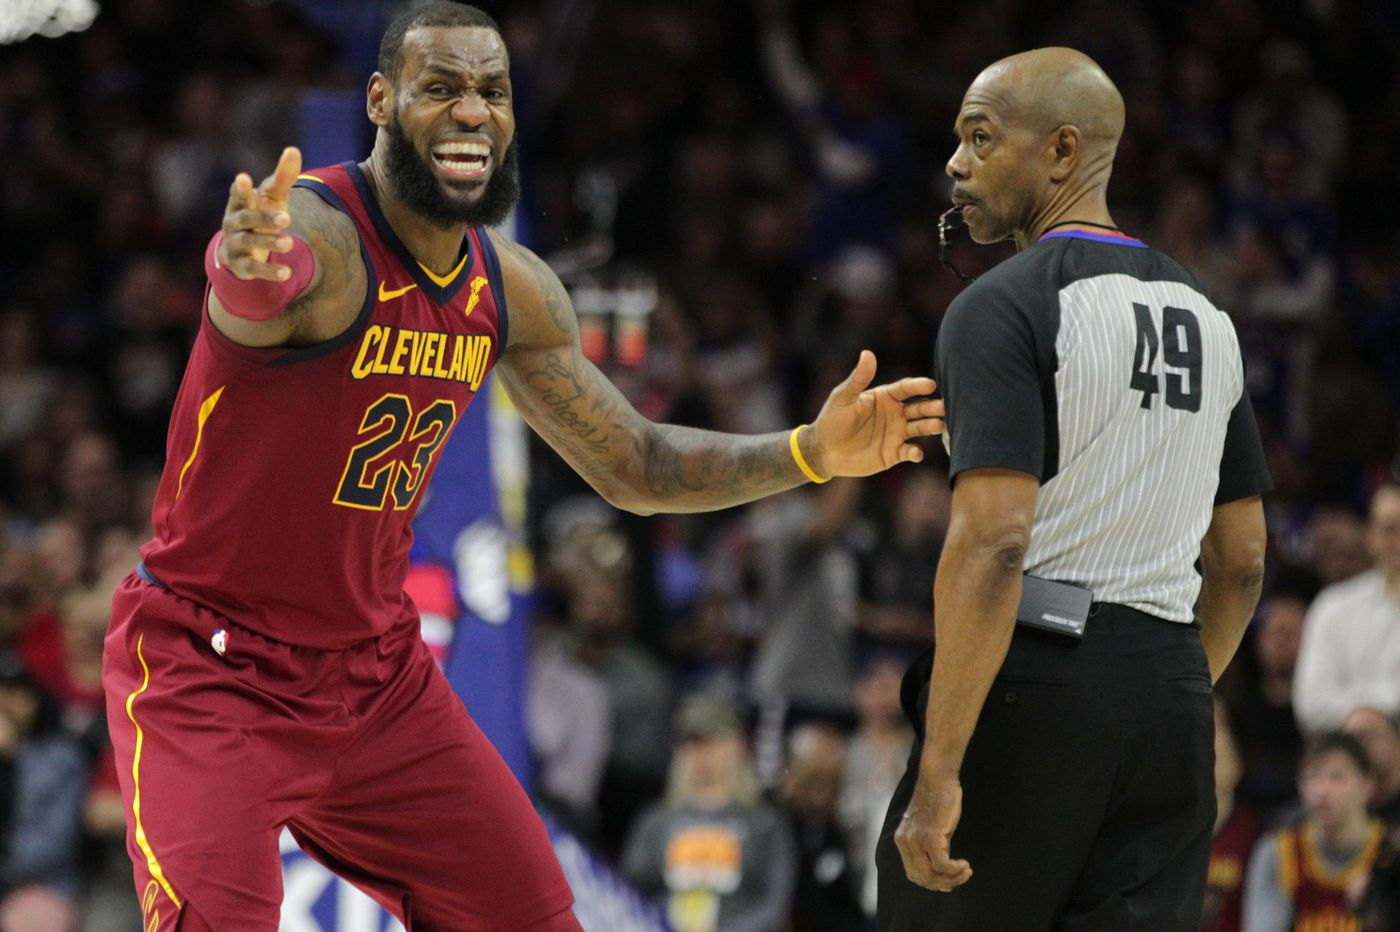 LeBron James is joining Paul George in free agency. What are the Sixers   chances of landing one of them  48df8dc53